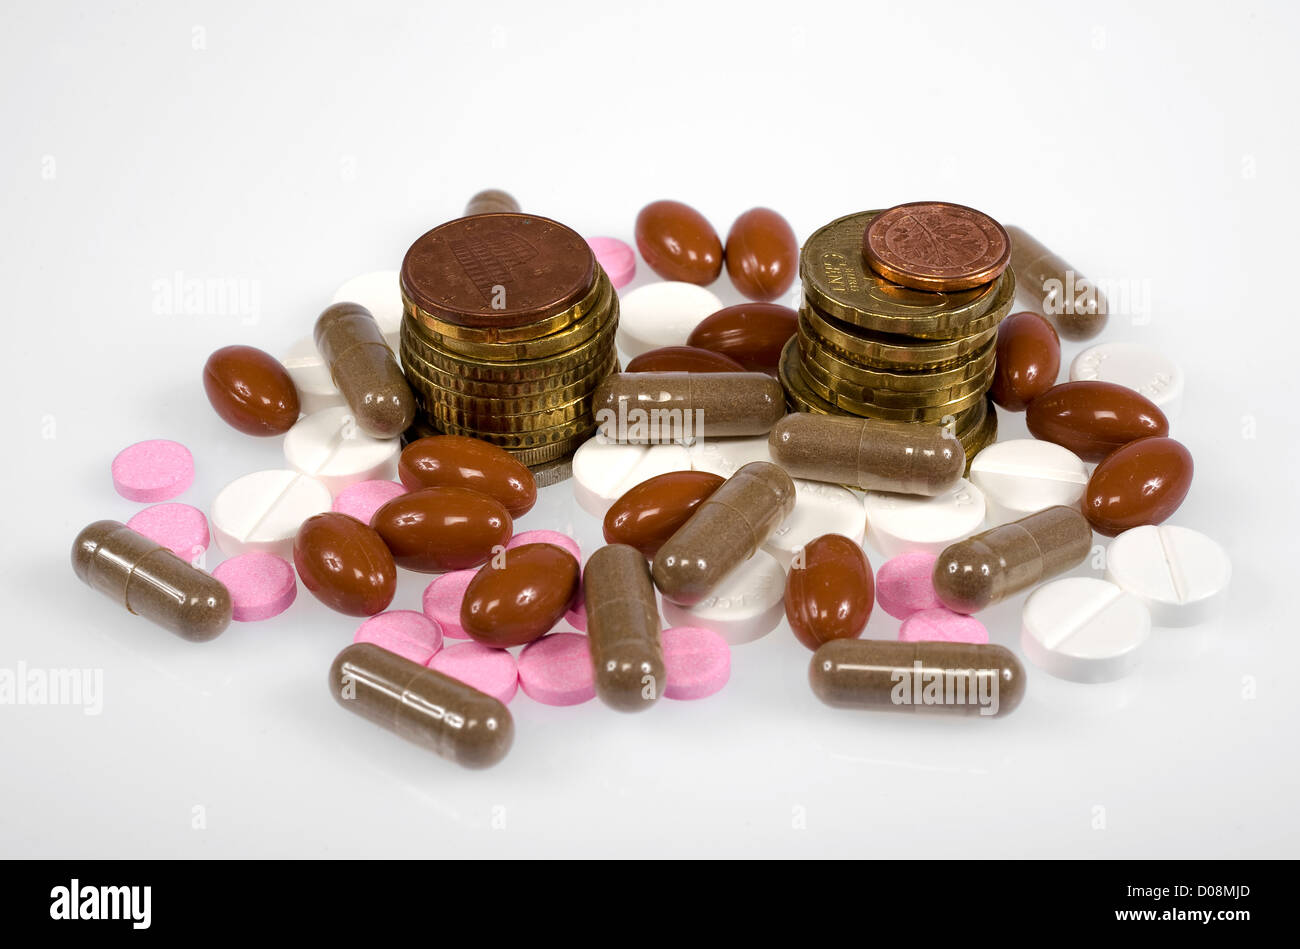 Euro coins between pills and medicines - Stock Image